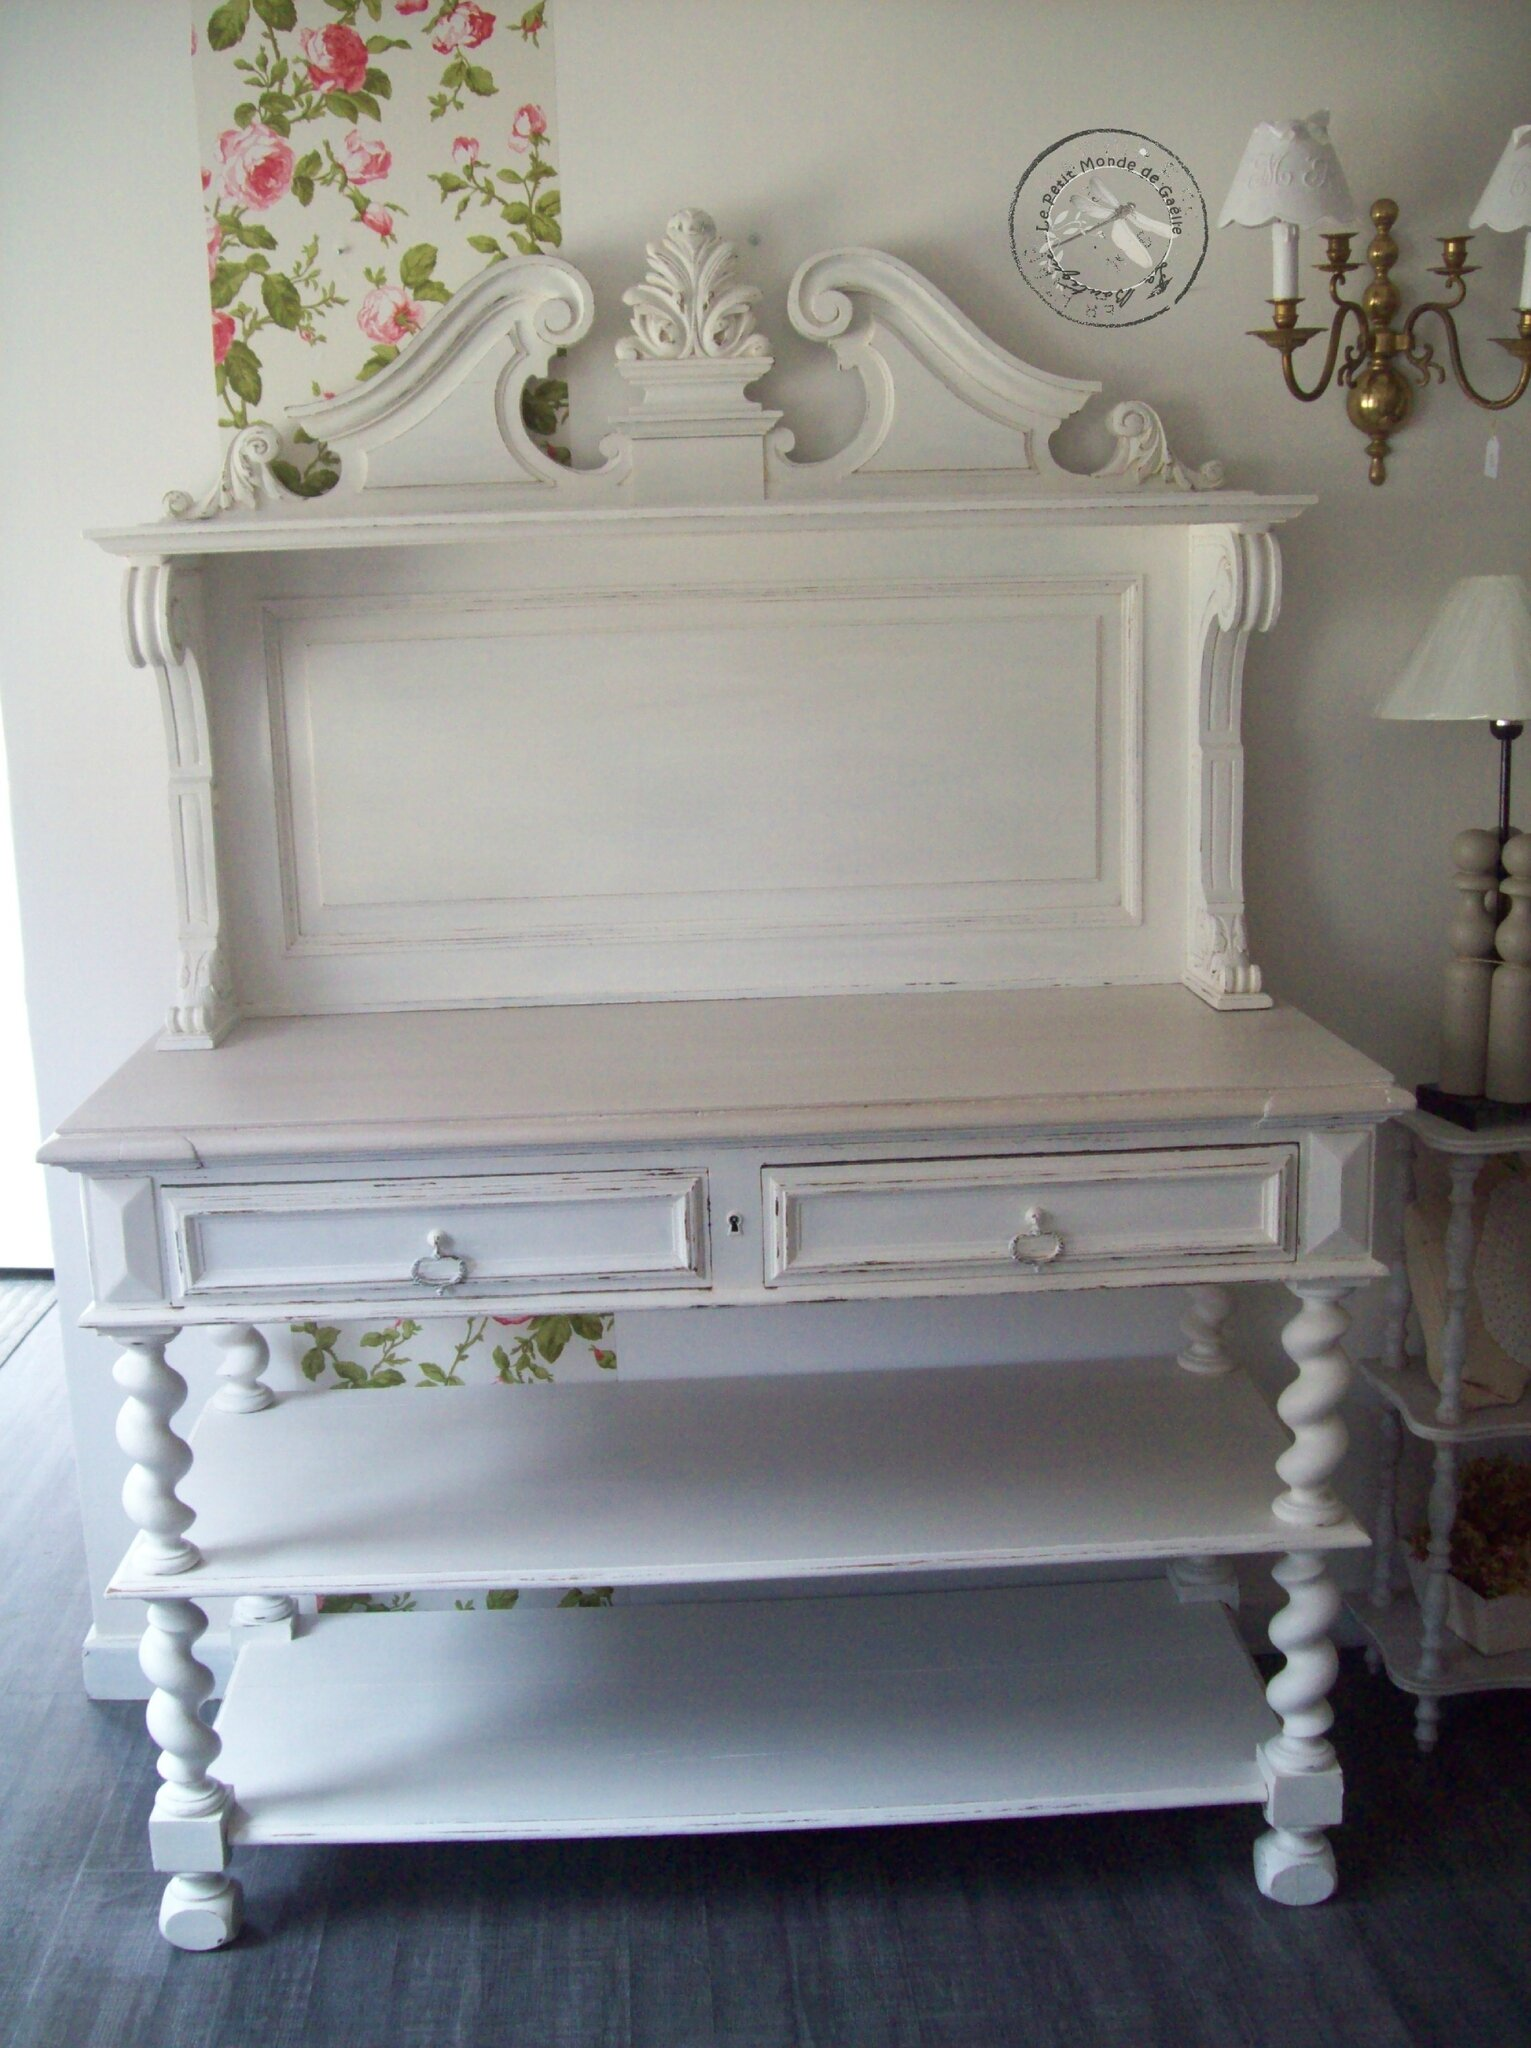 buffet console saint hubert patine shabby la boutique de ga lle. Black Bedroom Furniture Sets. Home Design Ideas